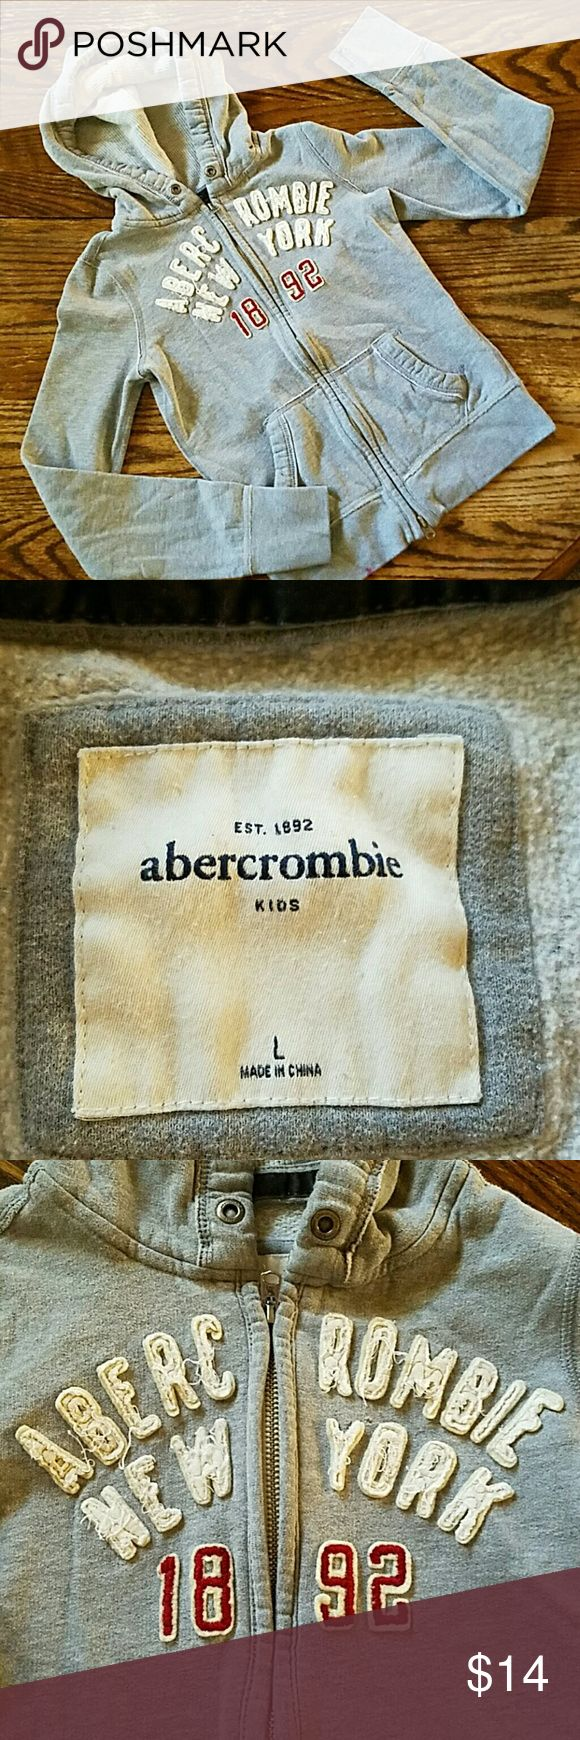 Abercrombie New York Kids warm hoodie.  Missing tie from hood, price reflects. abercrombie kids Shirts & Tops Sweatshirts & Hoodies